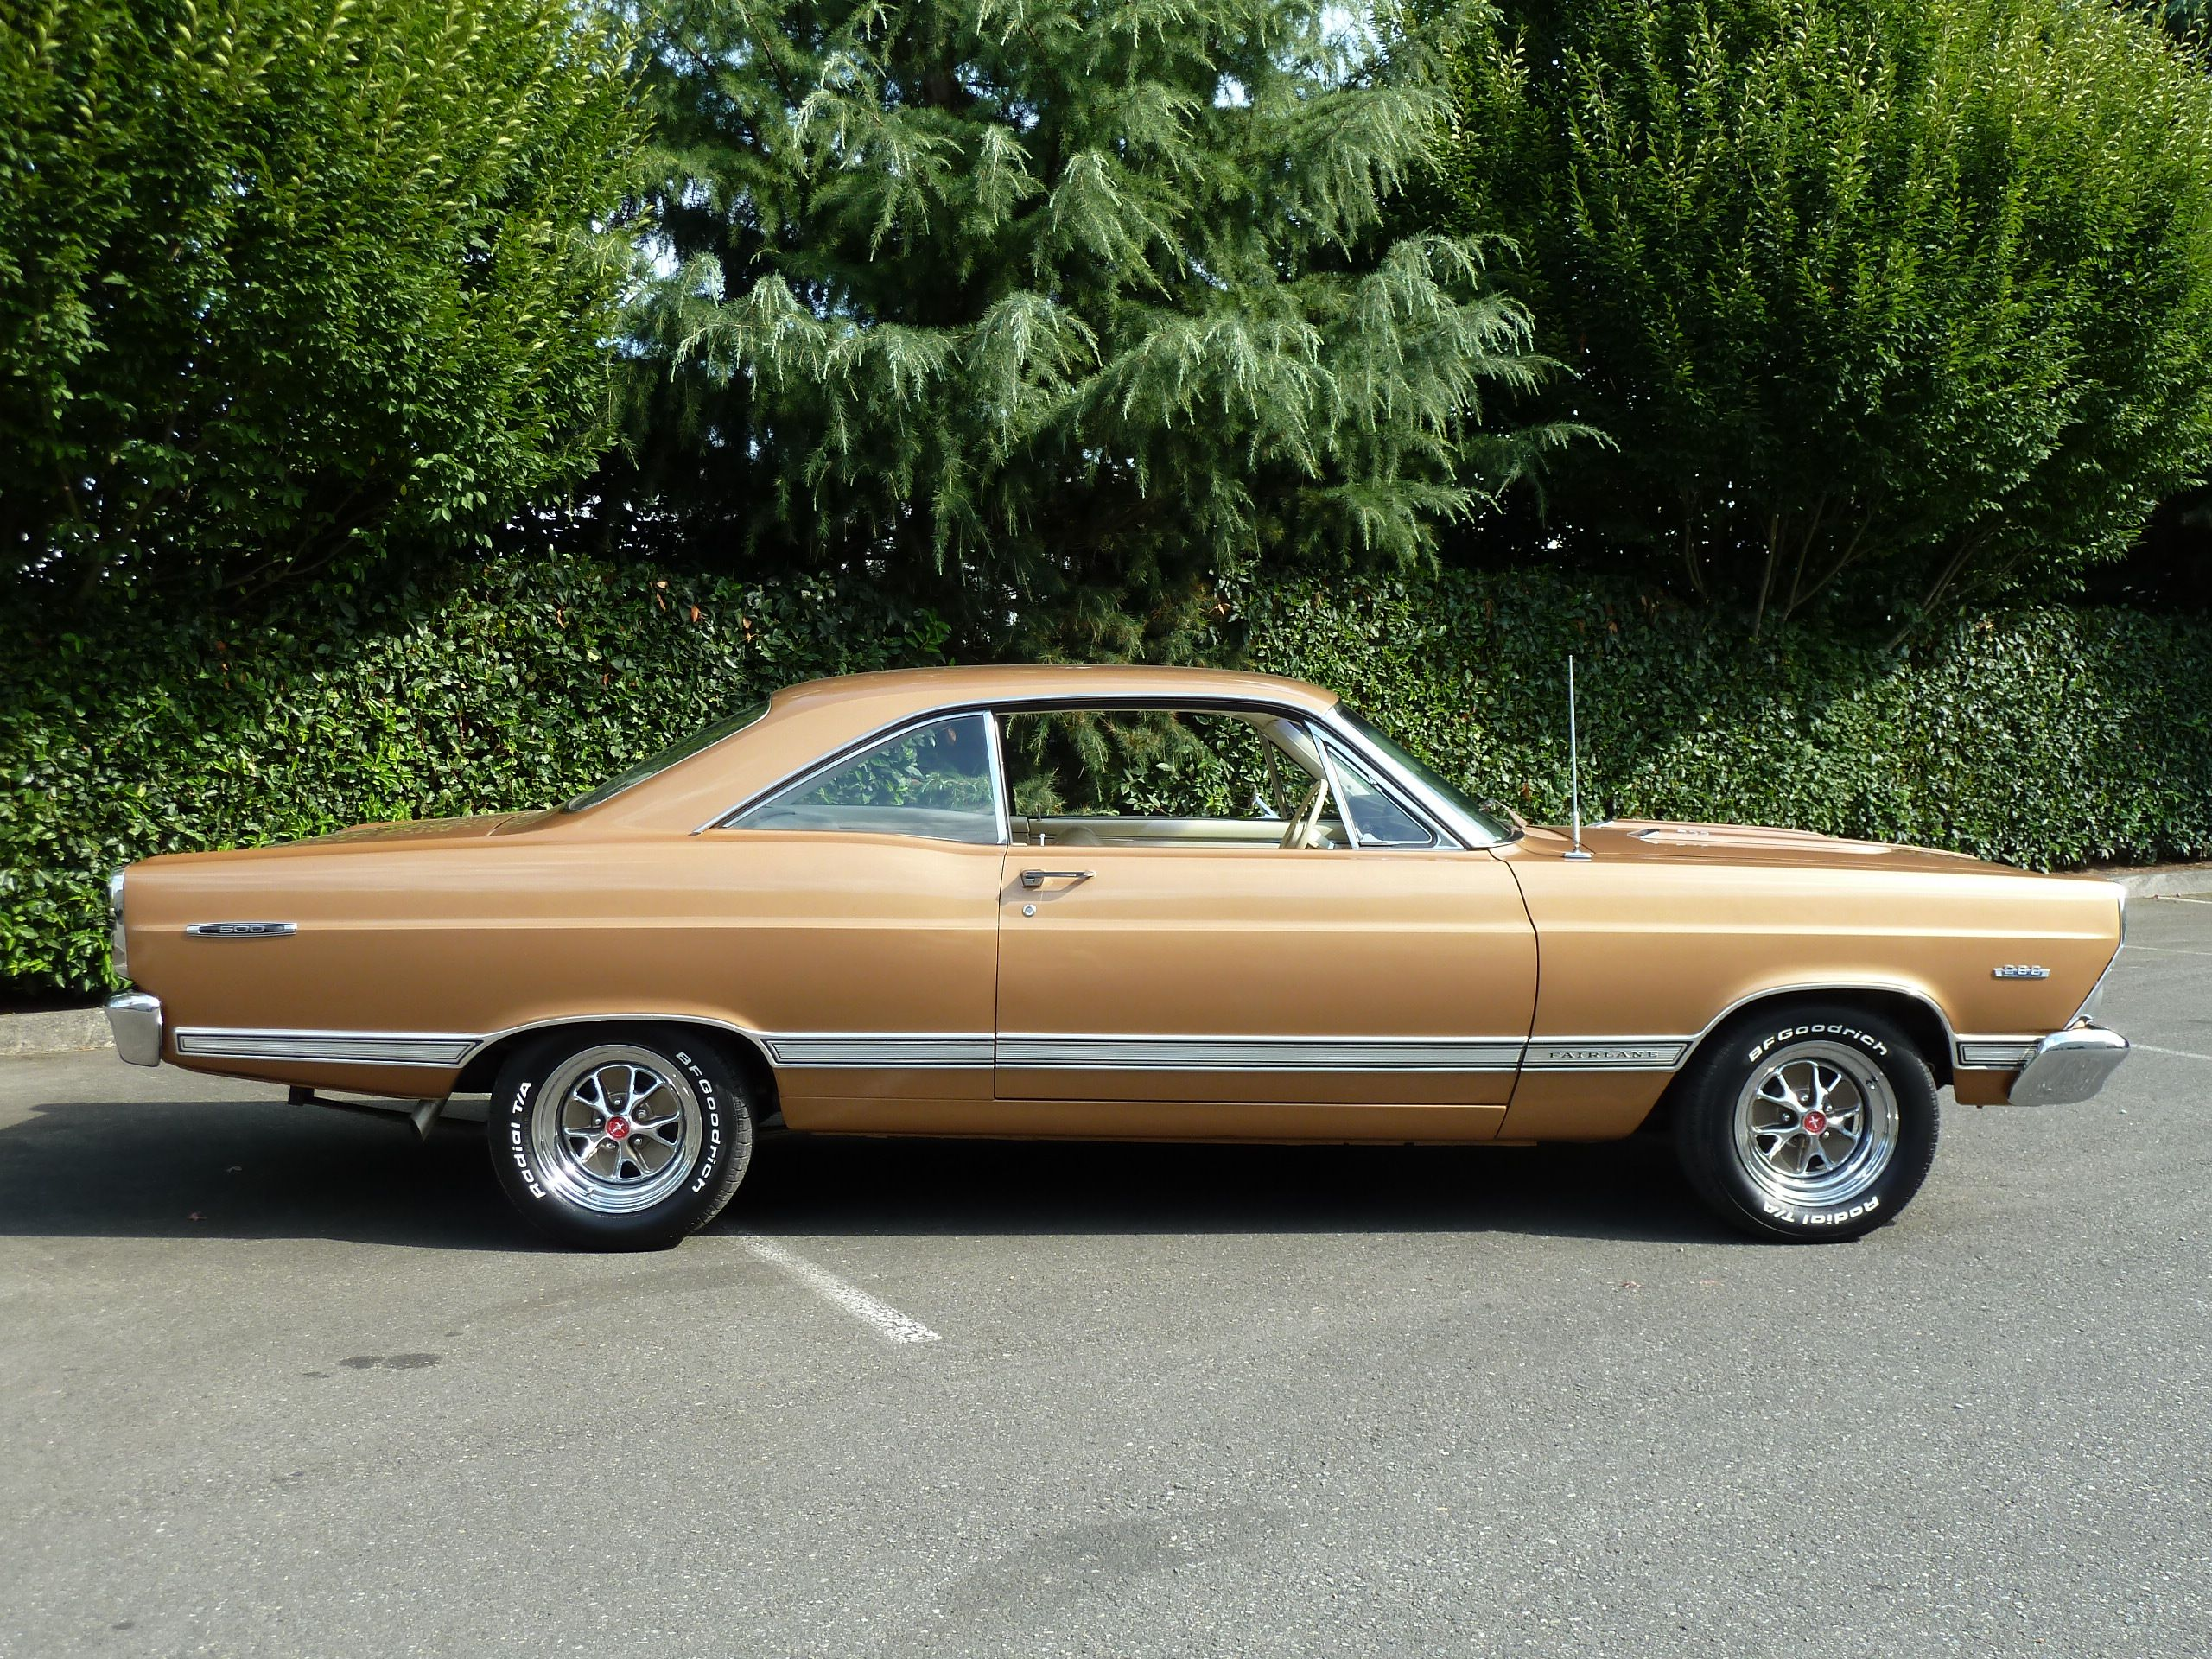 1967 Ford Fairlane & 203 best Other Fords images on Pinterest | Antique cars Vintage ... markmcfarlin.com